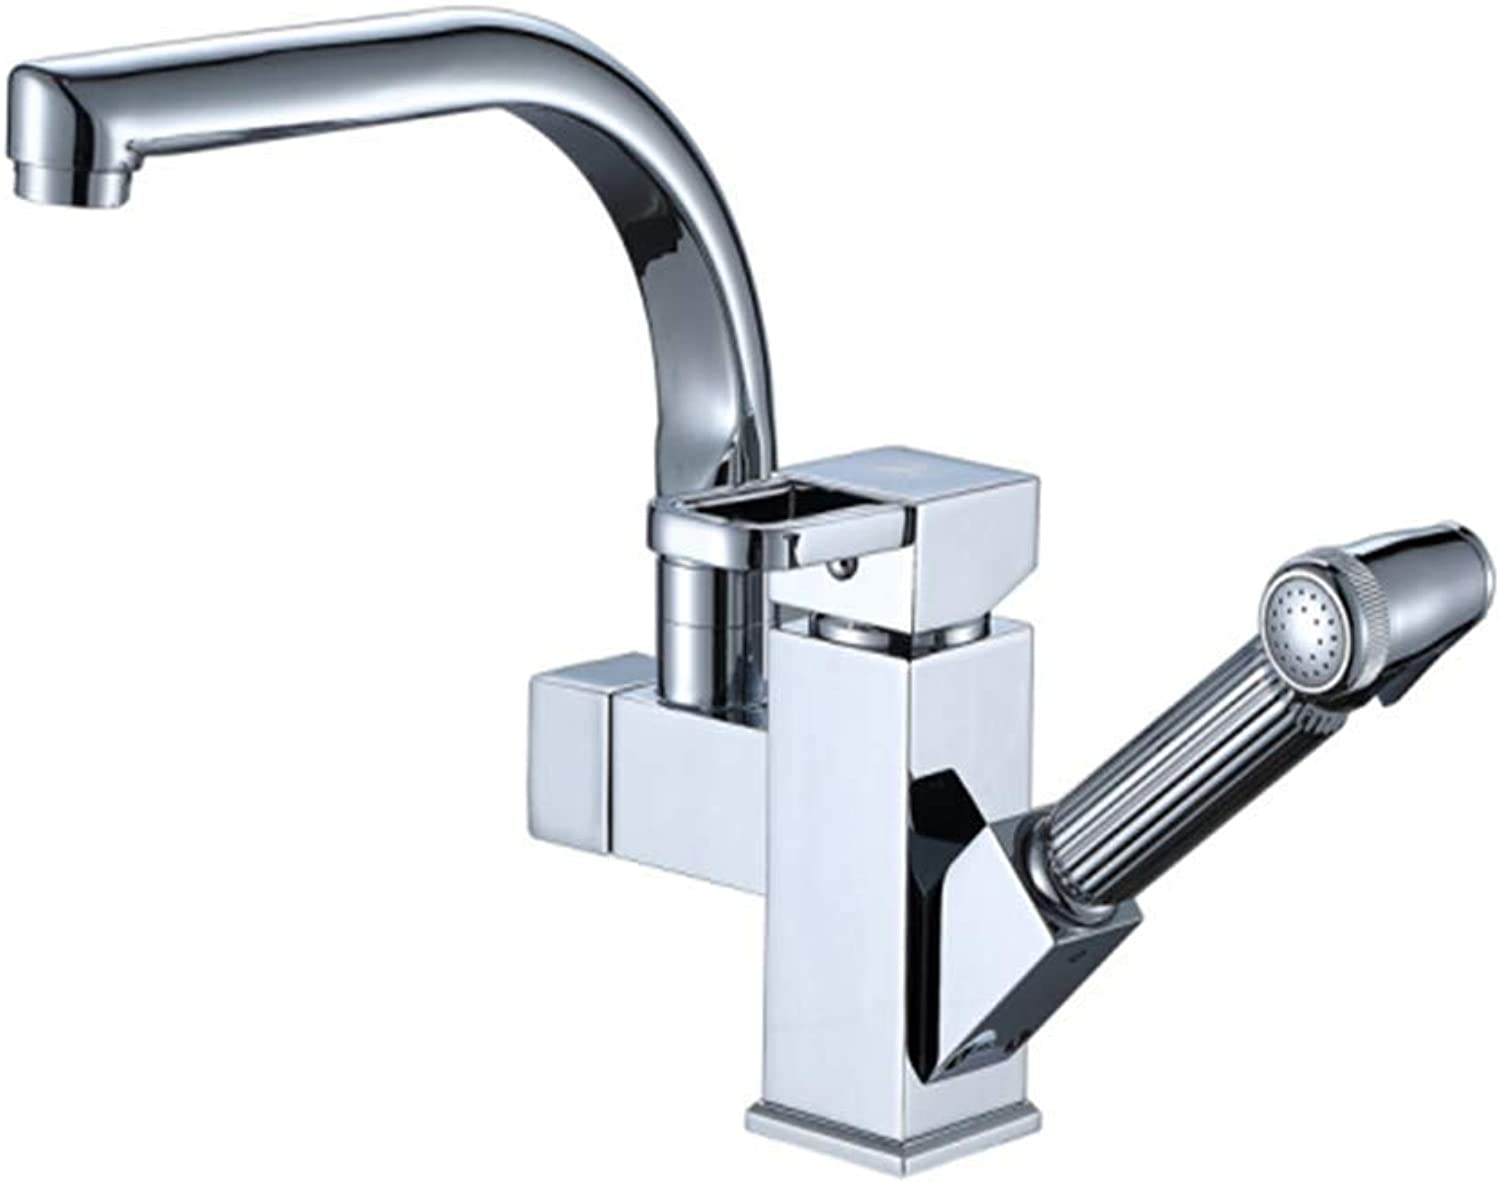 Kitchen Taps Faucet Modern Kitchen Sink Taps Stainless Steelfaucet, Kitchen and Bathroom, Cold and Hot Noodle Basin, Faucet, Kitchen Faucet, Bathroom Faucet, Sink Faucet